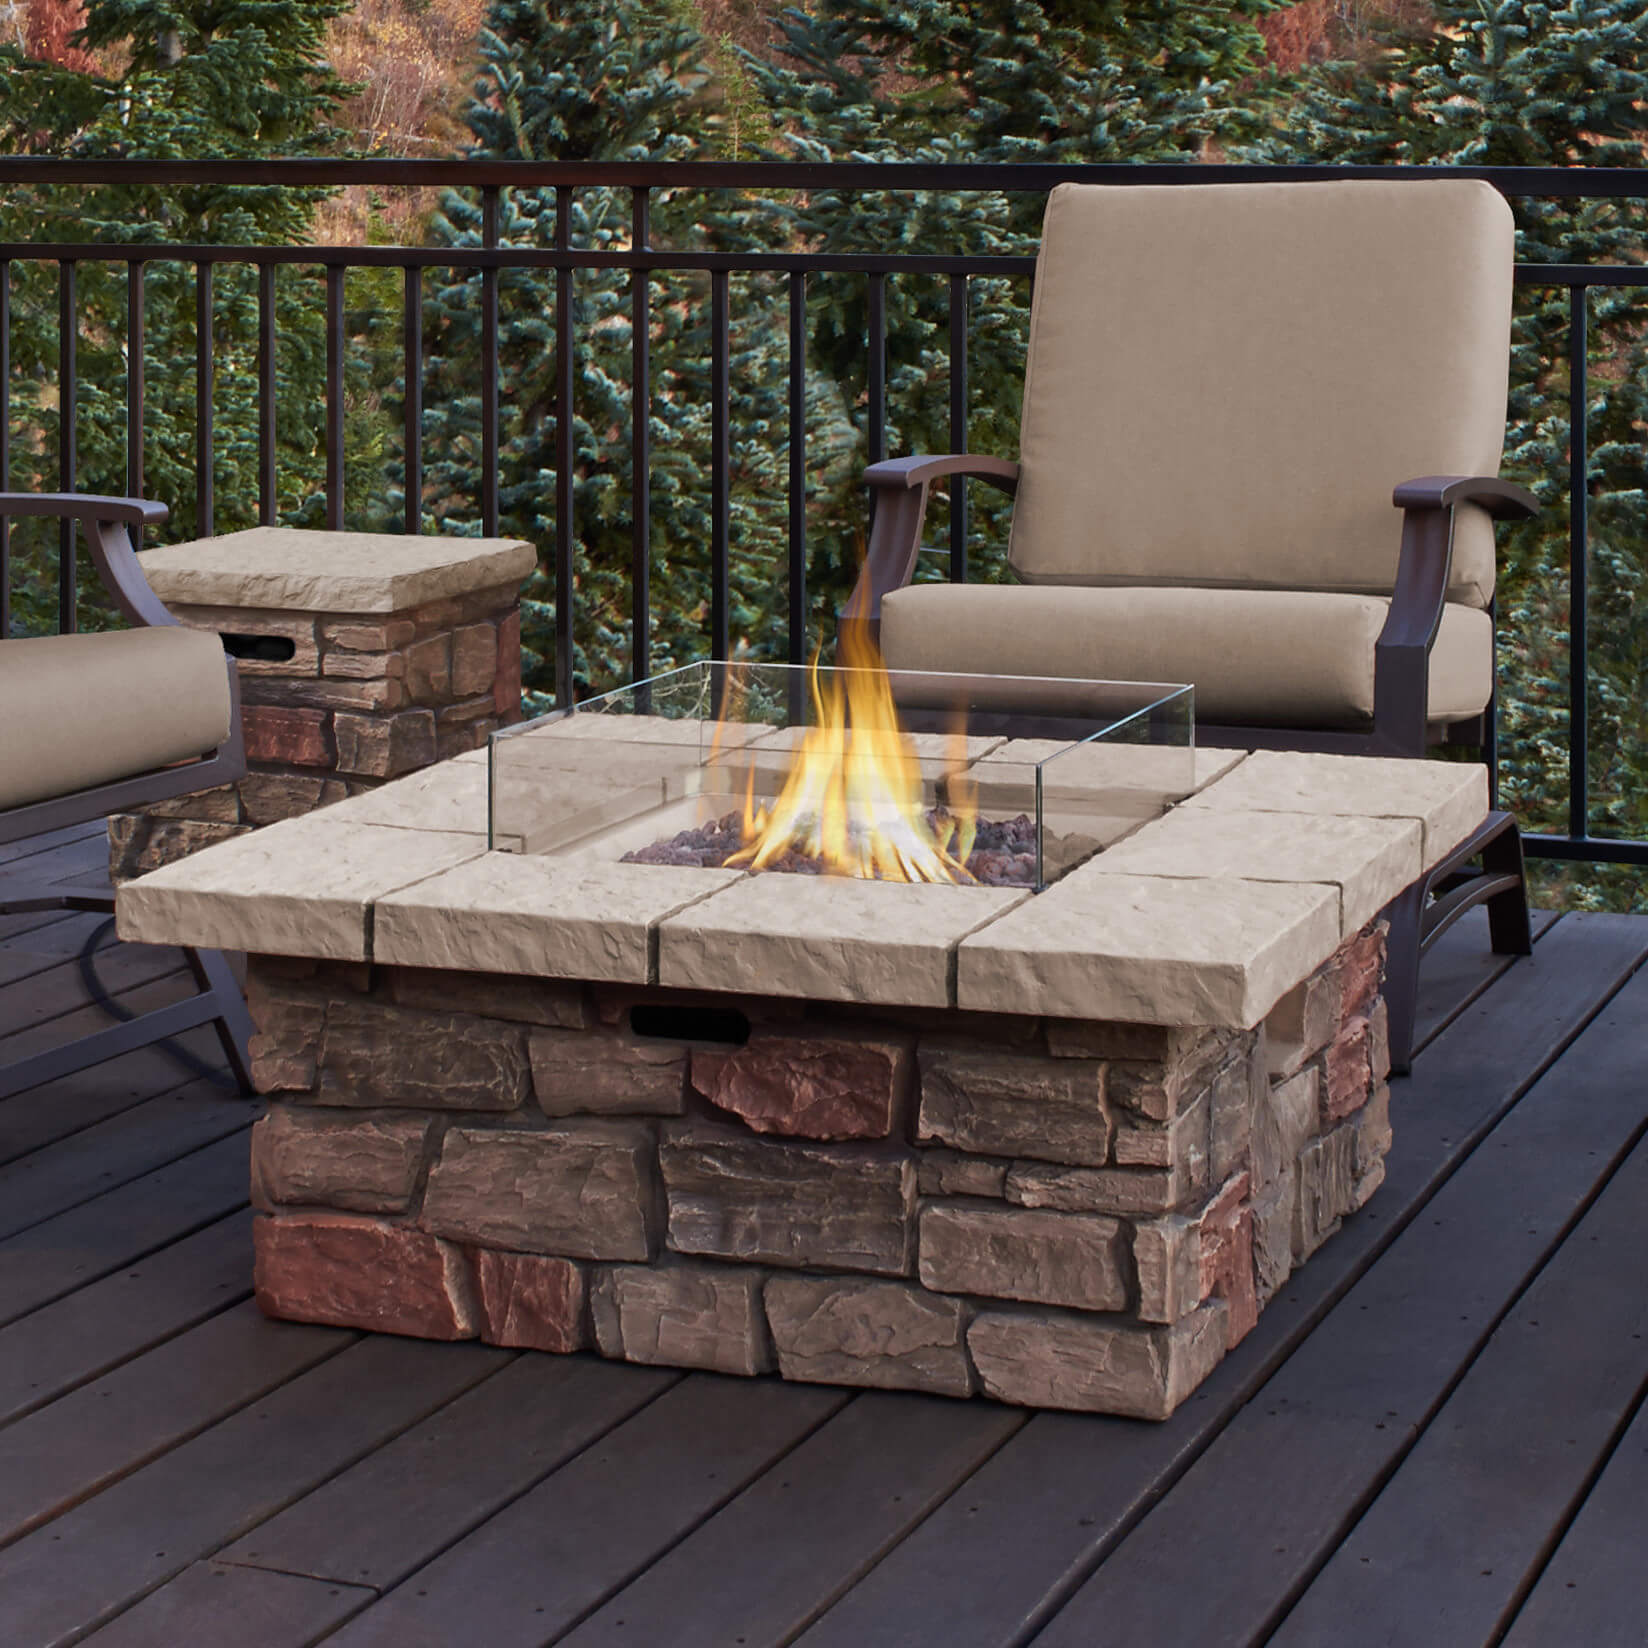 give your home a cool fire pit table with this brick façade propane patiofire pit. top  types of propane patio fire pits with table (buying guide)